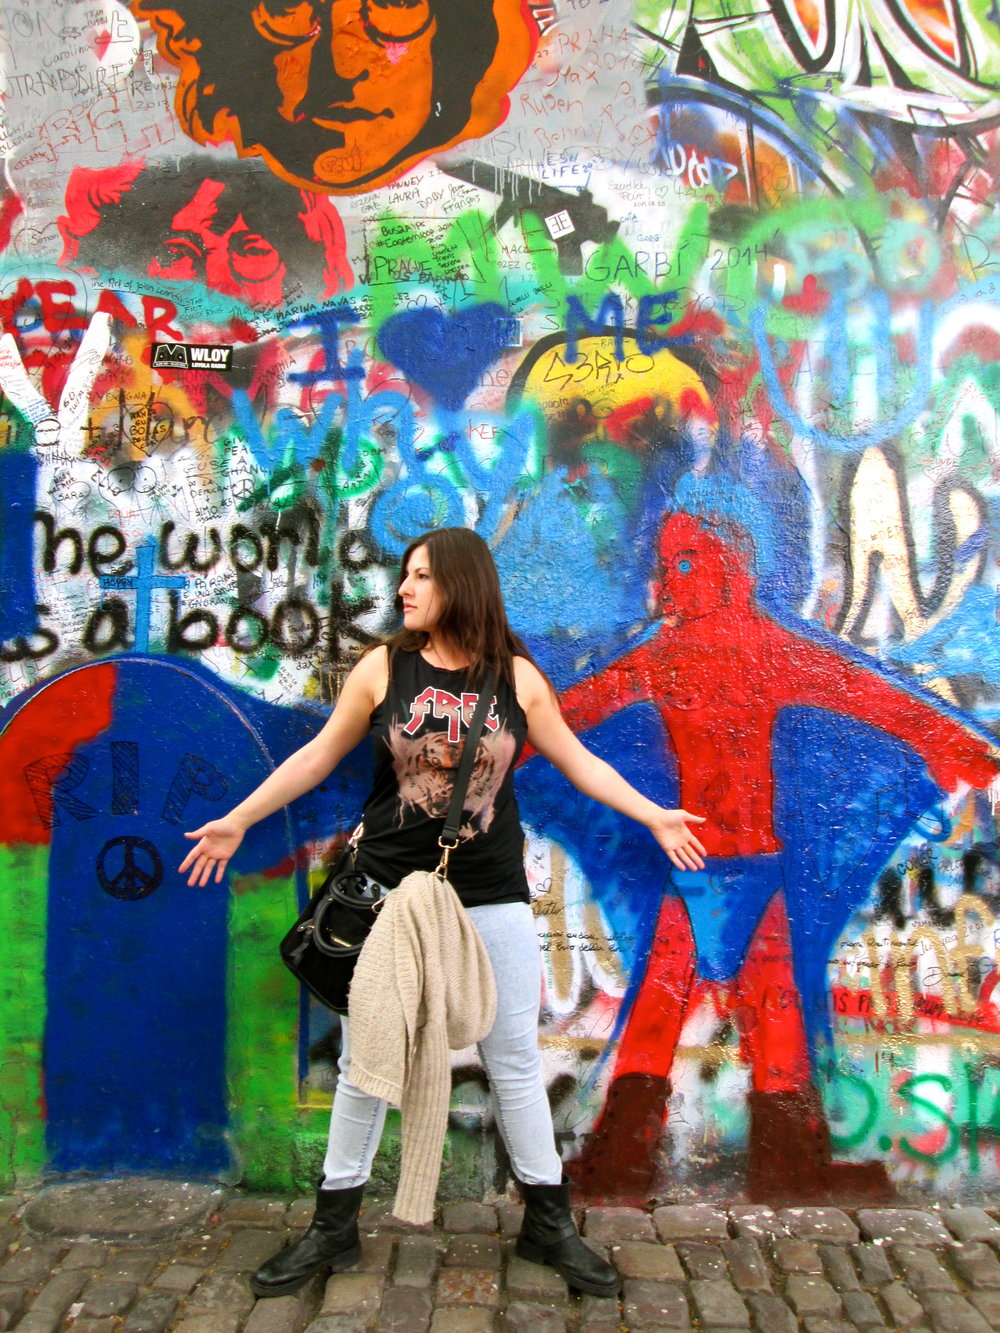 Posted up at the Lennon Wall.